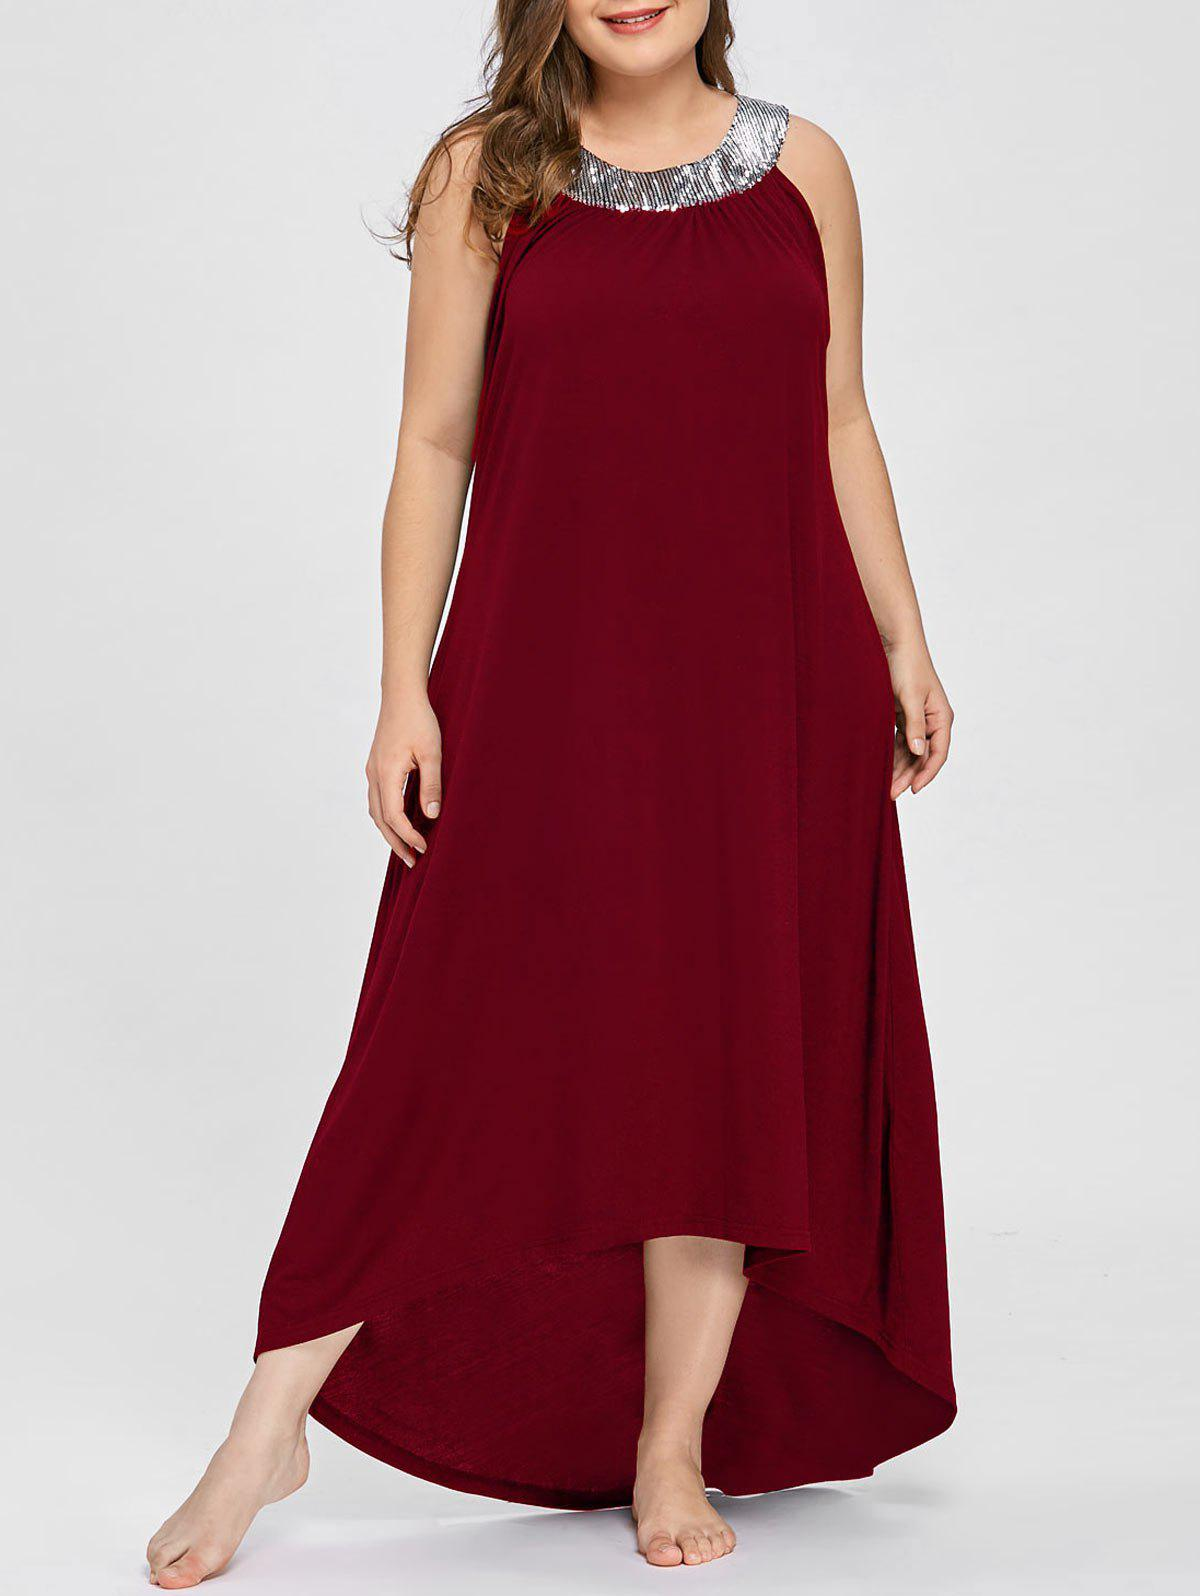 60593e9eec 48% OFF] Plus Size Sequins Collar Sleeveless Maxi Dress | Rosegal